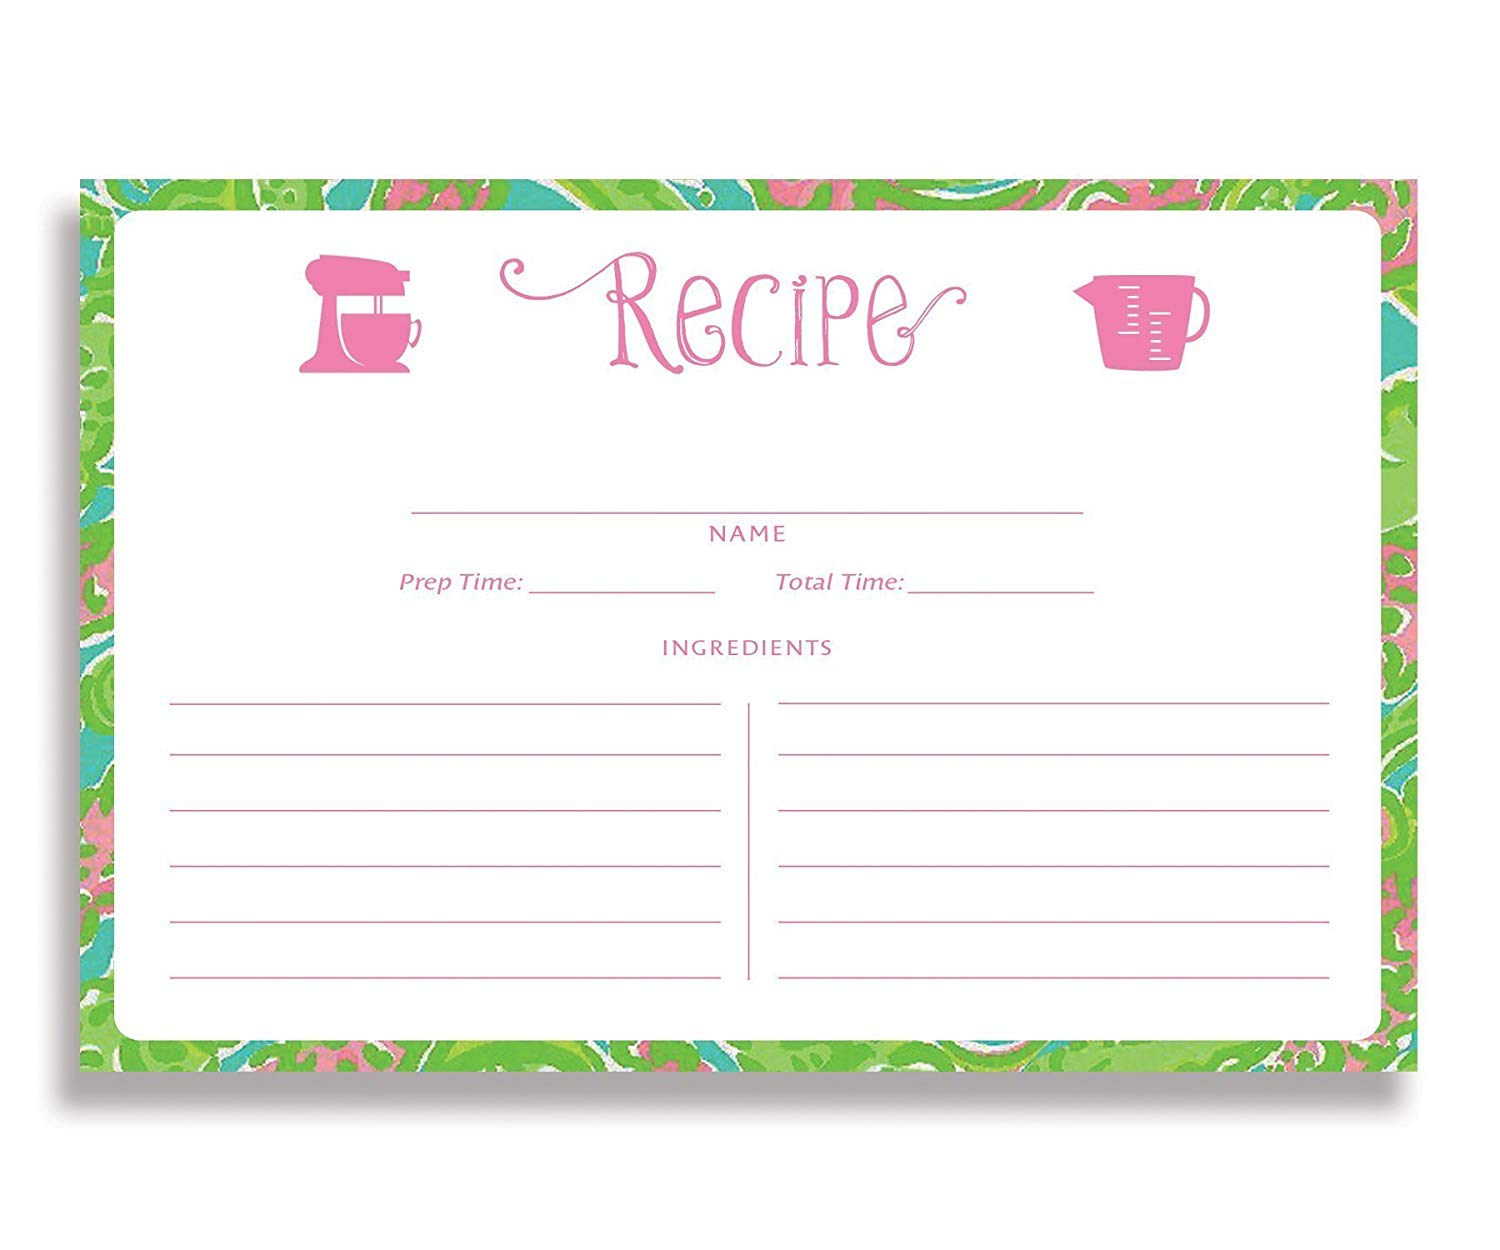 Floral and Black Stripe Recipe Cards Set of 25 4x6 inches Katelyn Black Double Sided Card Stock Recipe Card Set